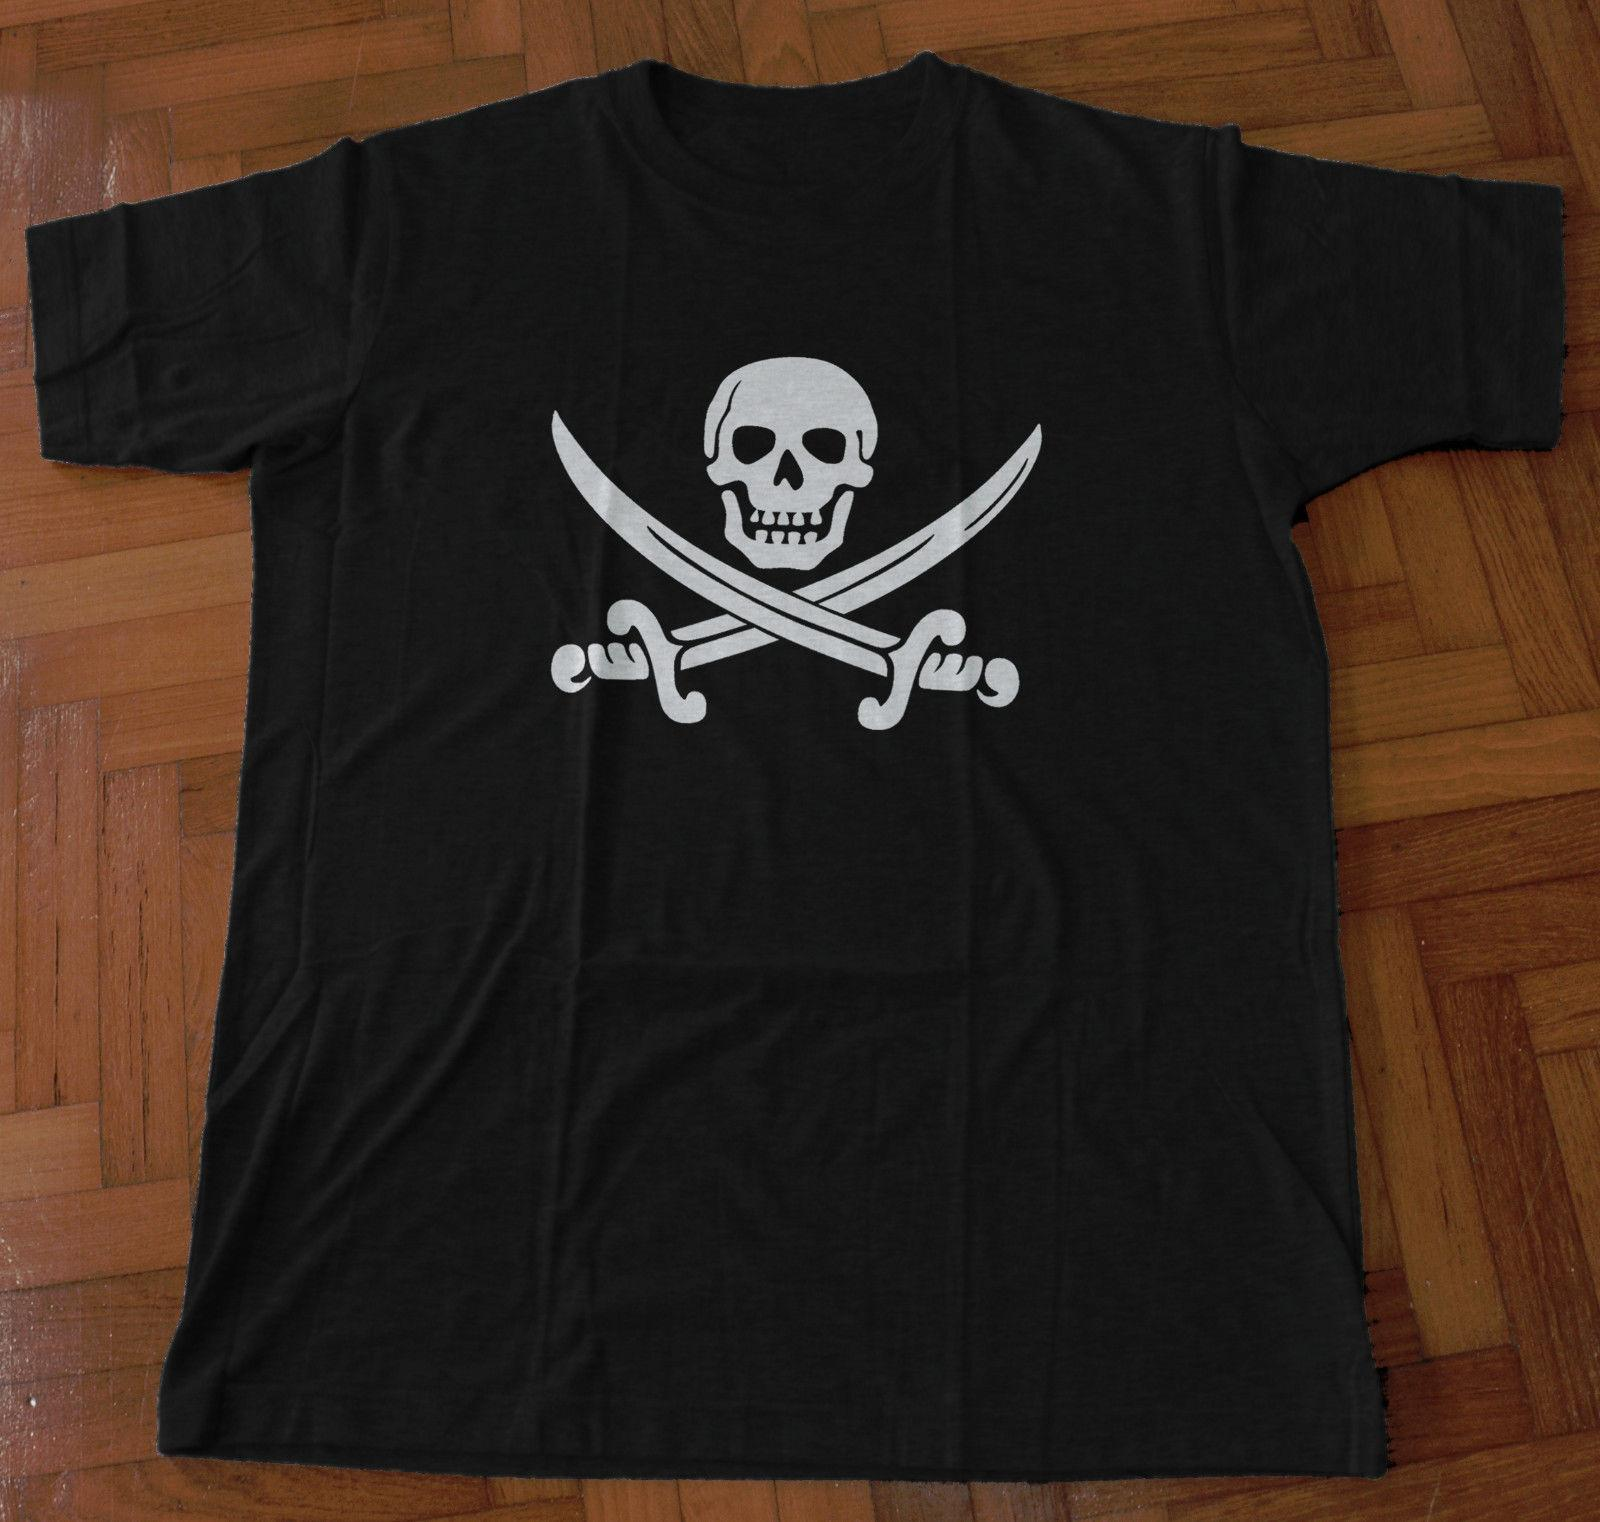 10437c4e3abb1 Jolly Roger Screen Printed T Shirt Pirate Calico Jack Skull Cross Swords  Sails Funny Unisex Casual Gift Design And Order T Shirts Gag T Shirts From  ...